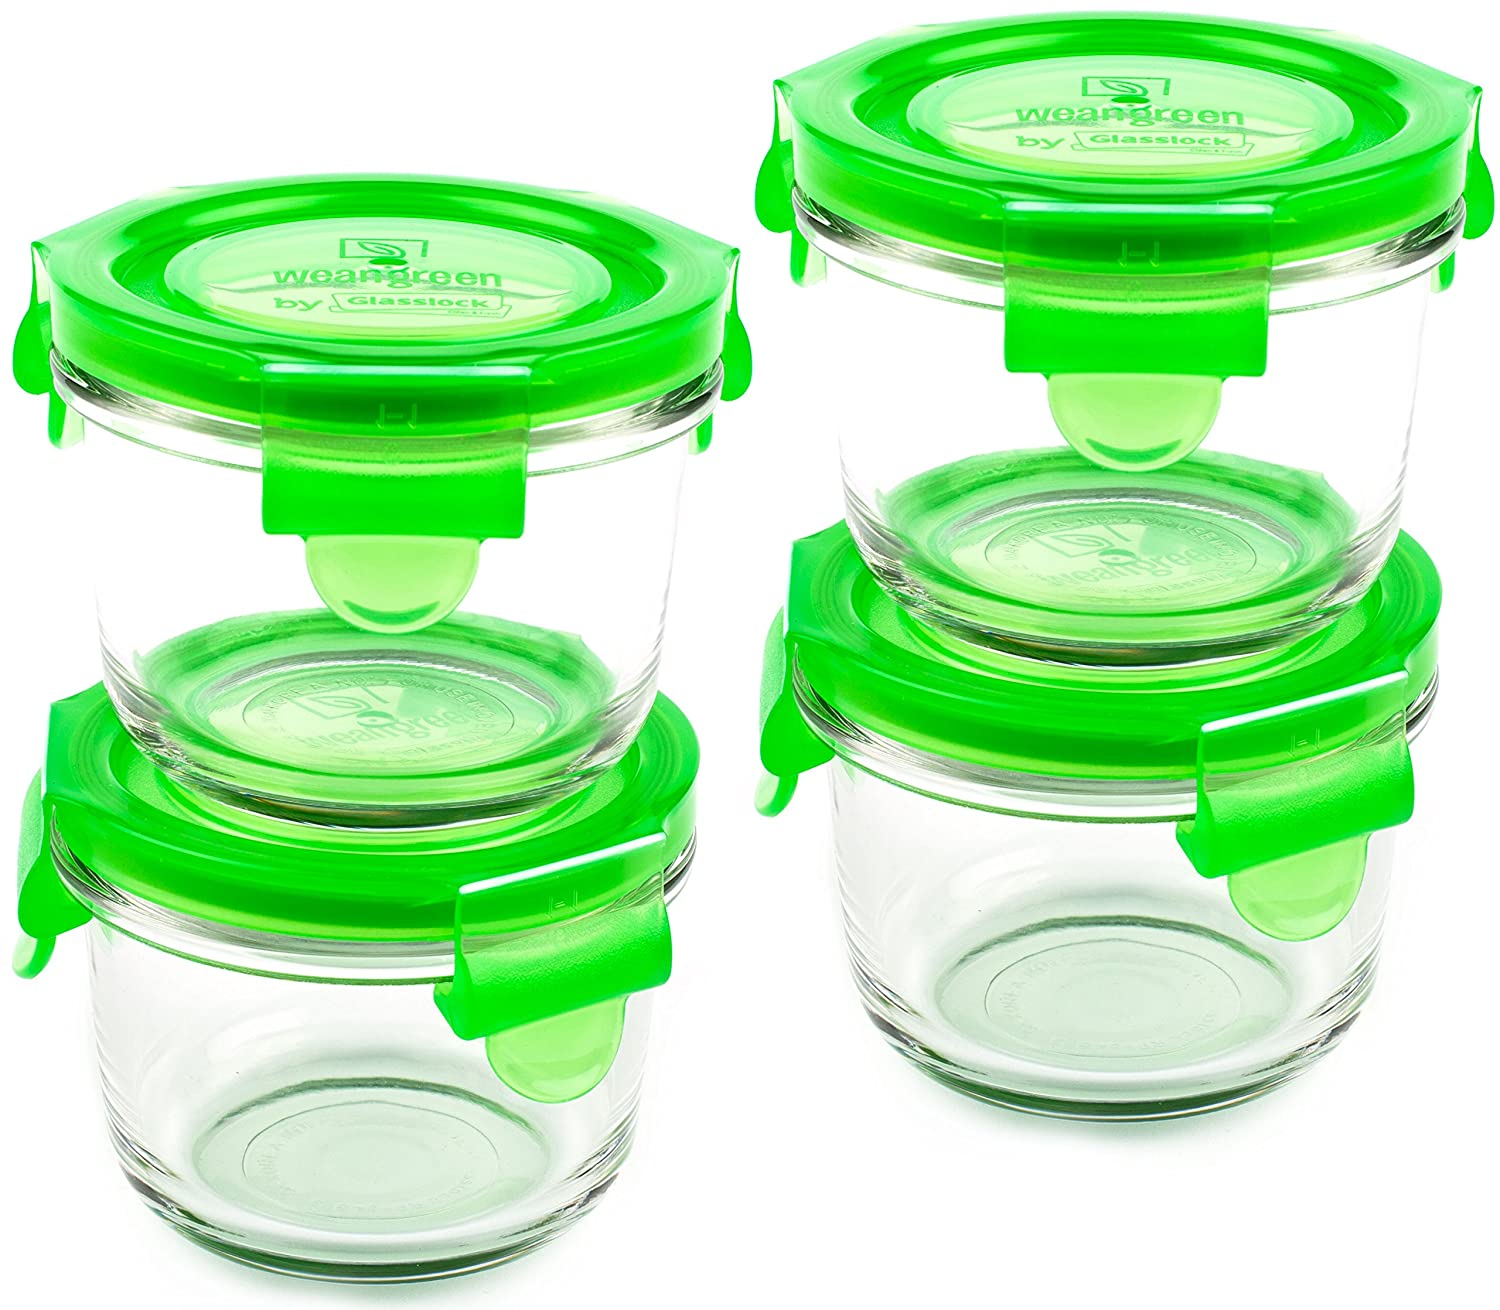 Wean Green Pea Bowls Reusable Glass Food Storage Container Set